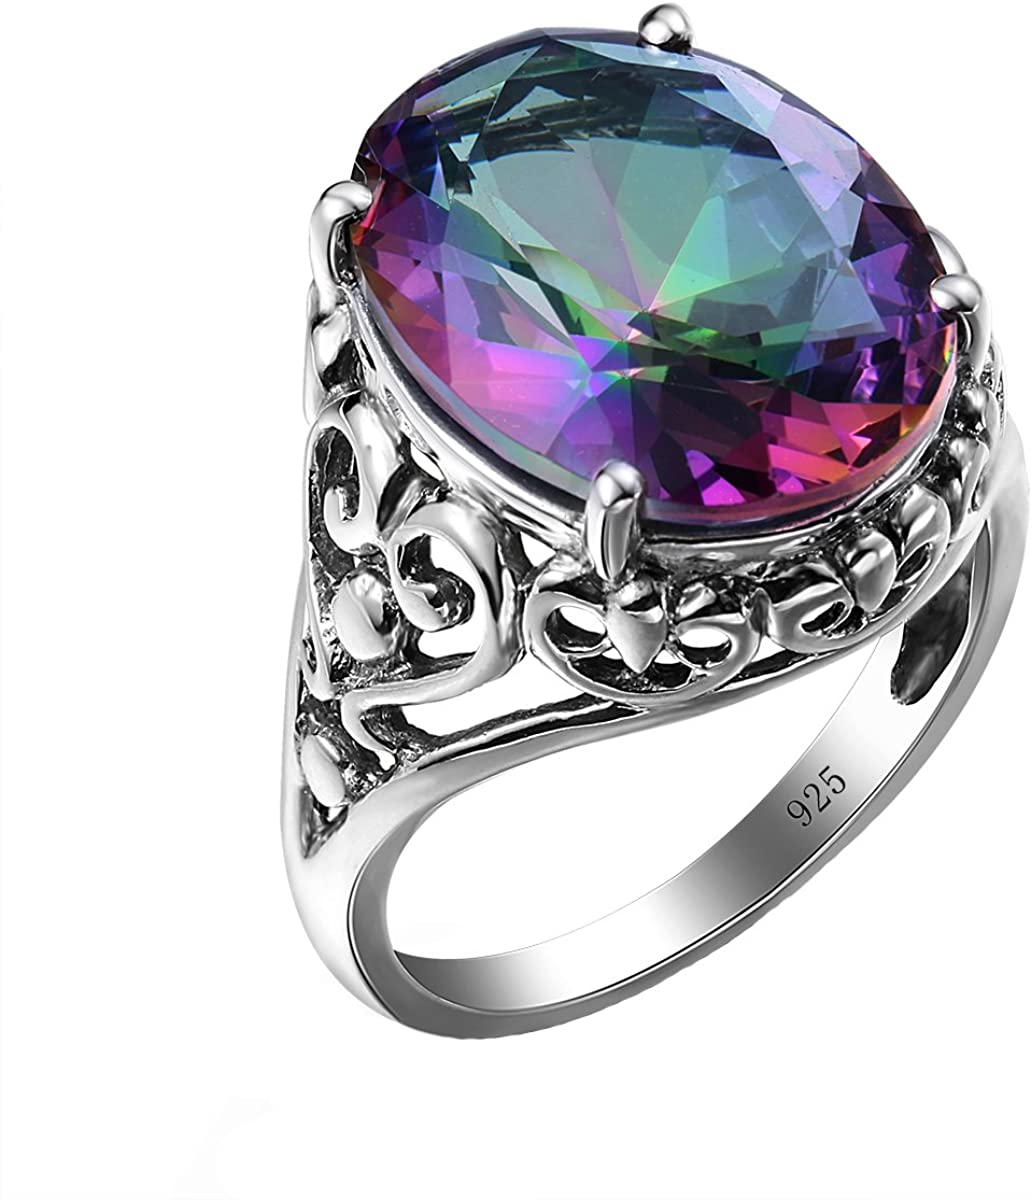 SzjinAo Vintage Antique Design Ring Round Mystic Fire Rainbow Topaz Stone for Women's Men 's Promise Engagement 925 Sterling Silver Rings